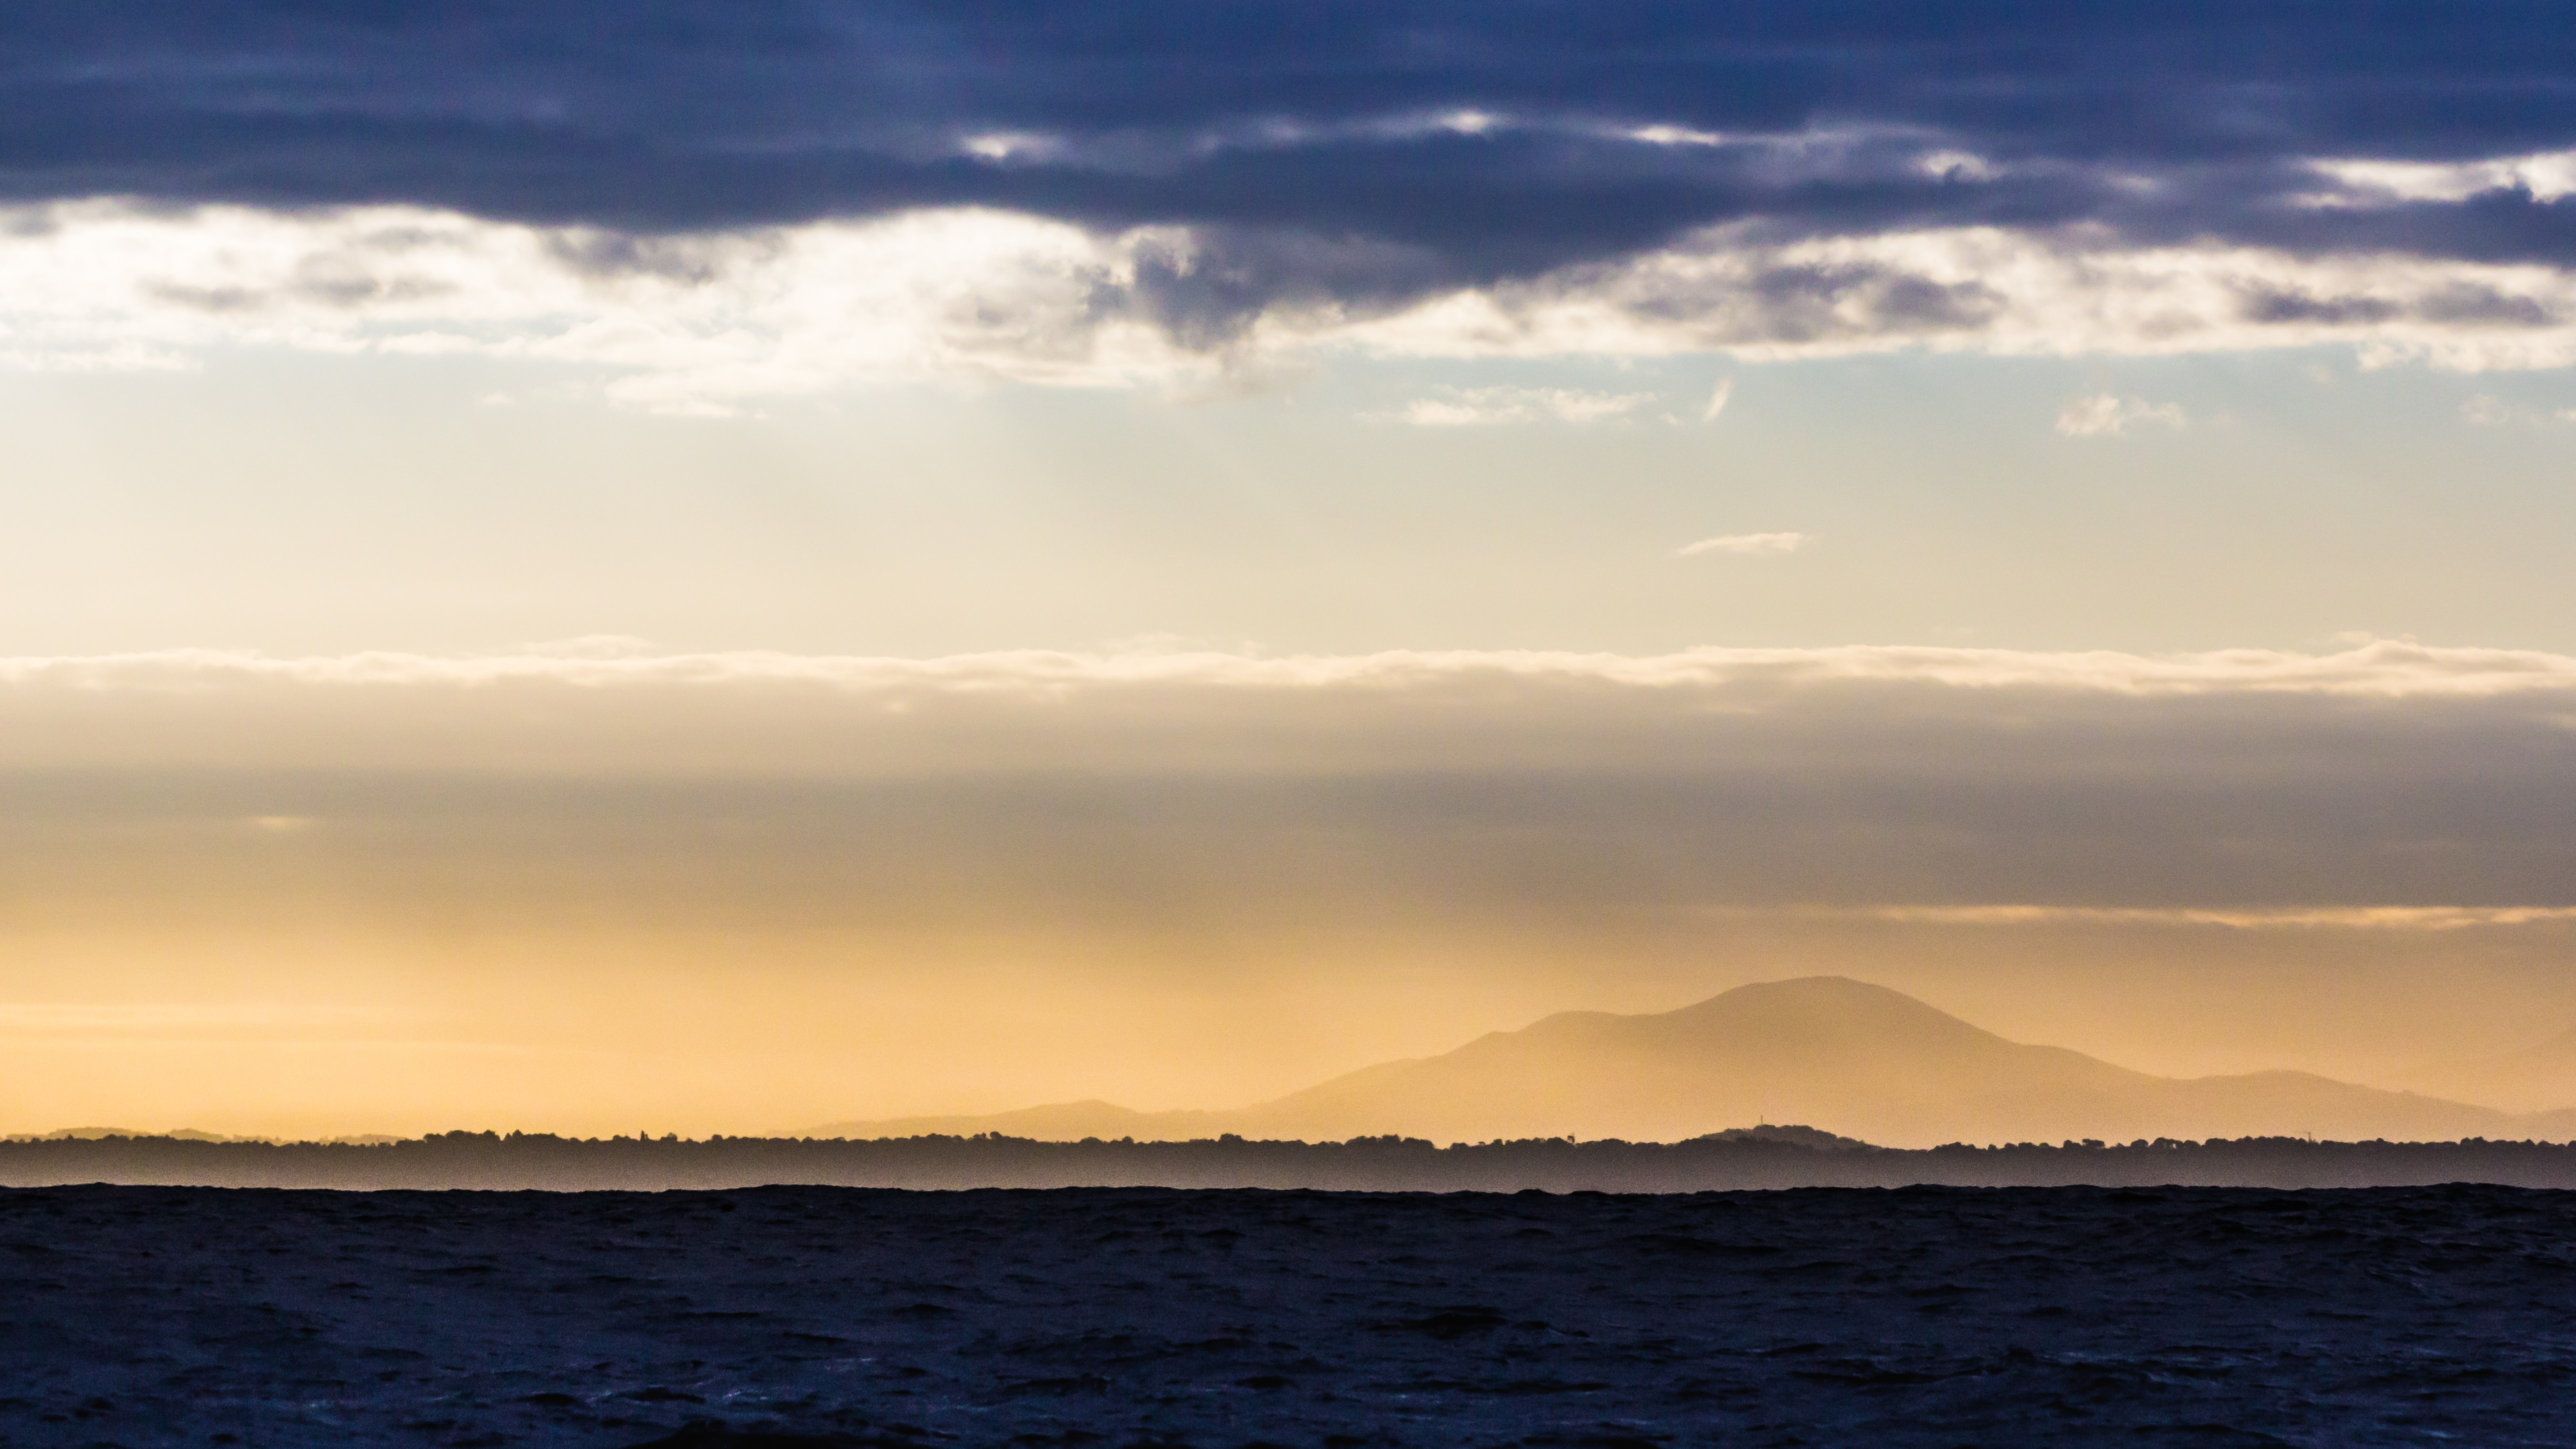 Silhouette of a mountain seen from the surface of a choppy sea during sunset